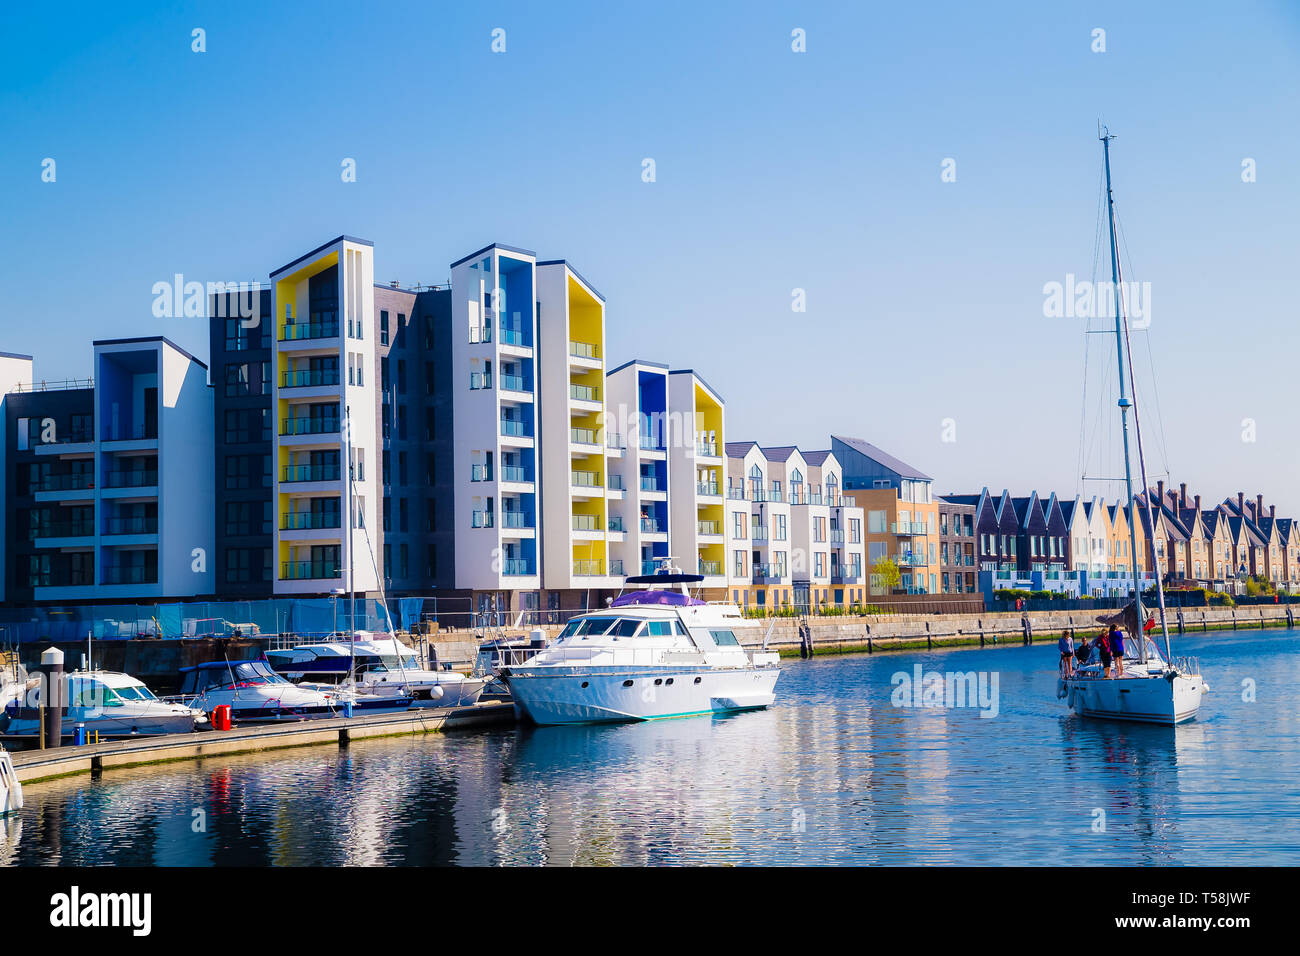 A yacht with a tall mast passes by luxury apartments on St